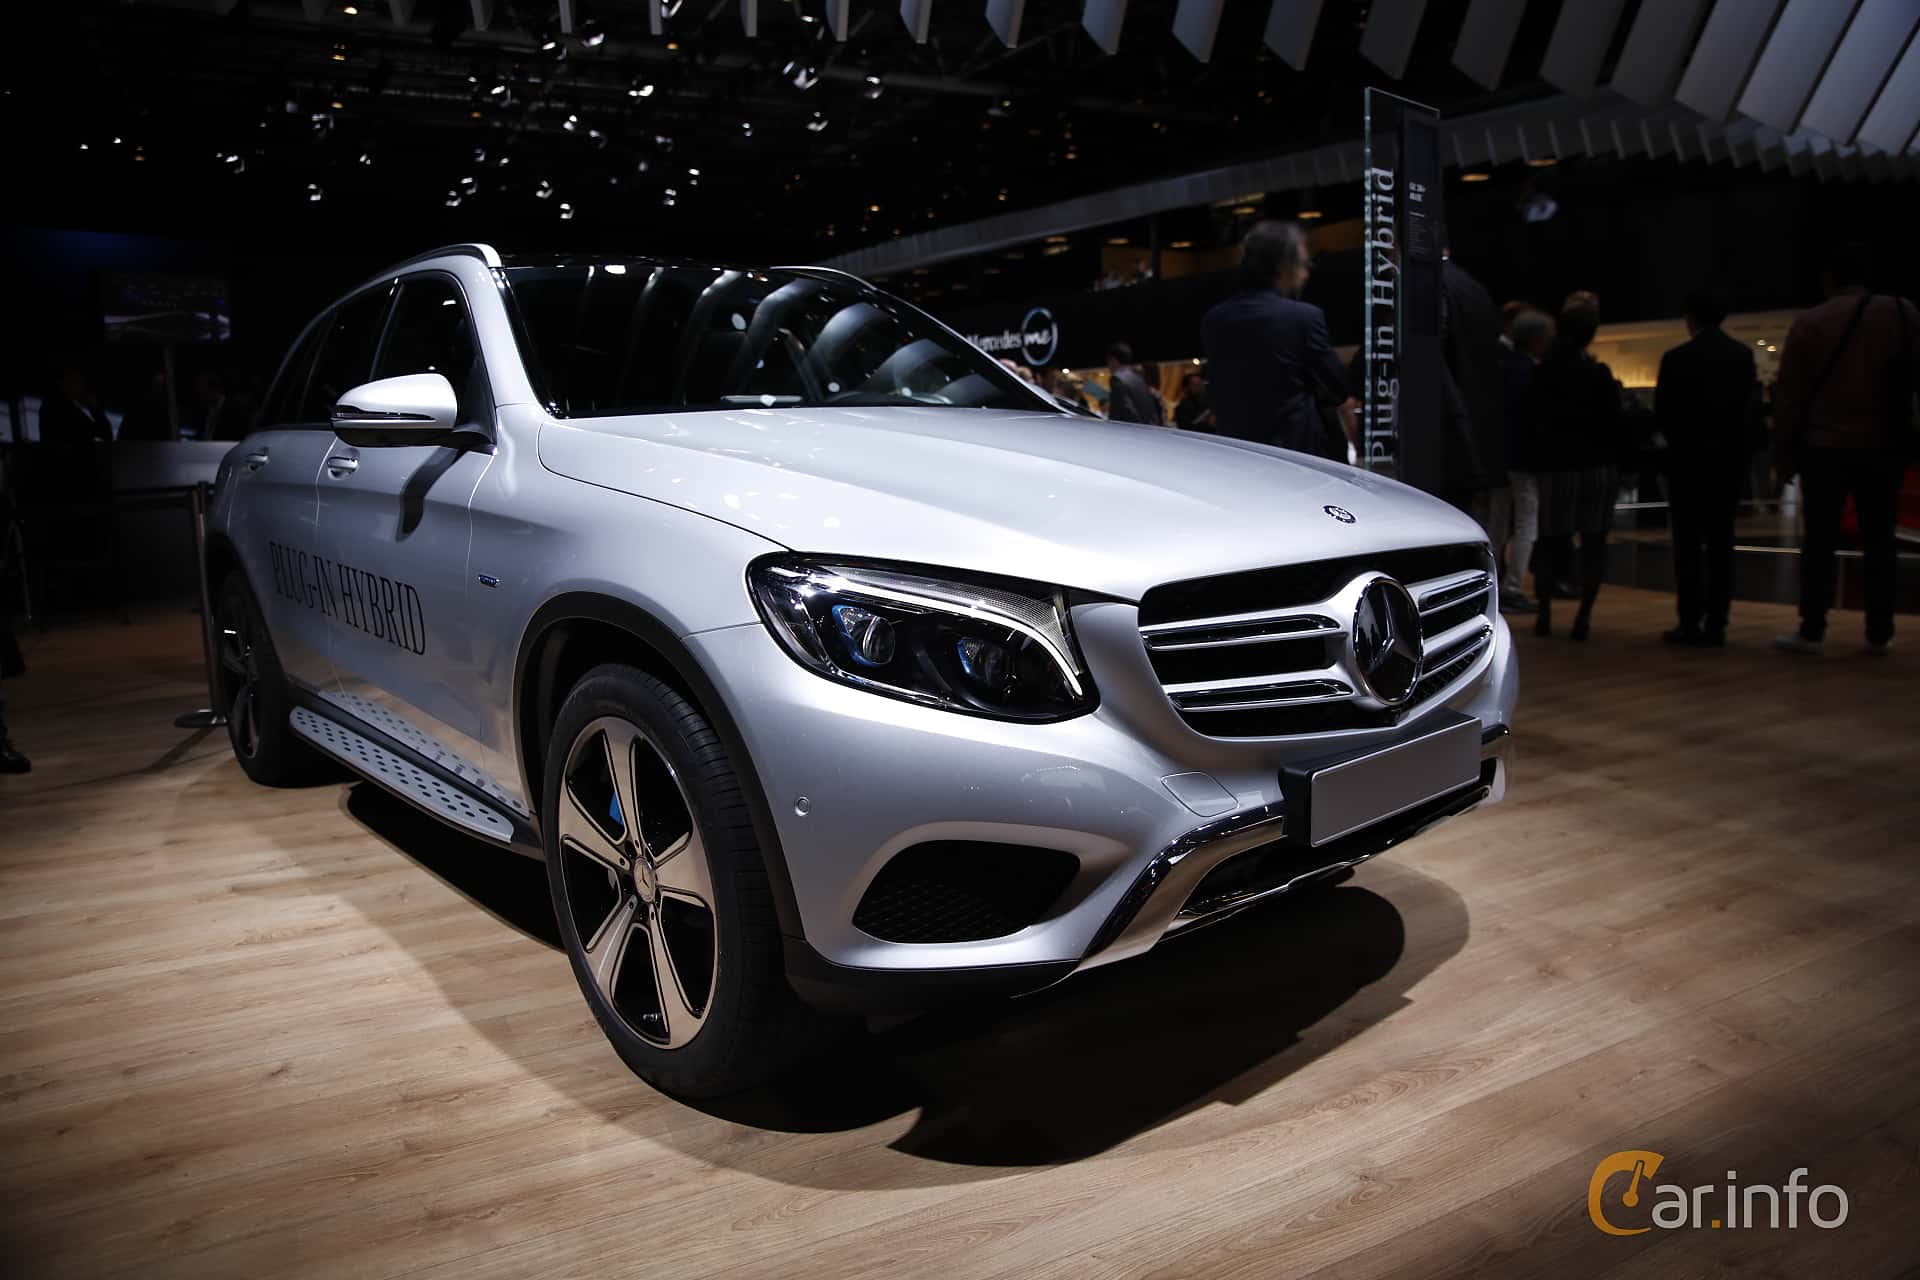 5 images of mercedes benz glc 350 e 4matic 2 0 4matic 7g for 2014 mercedes benz glc